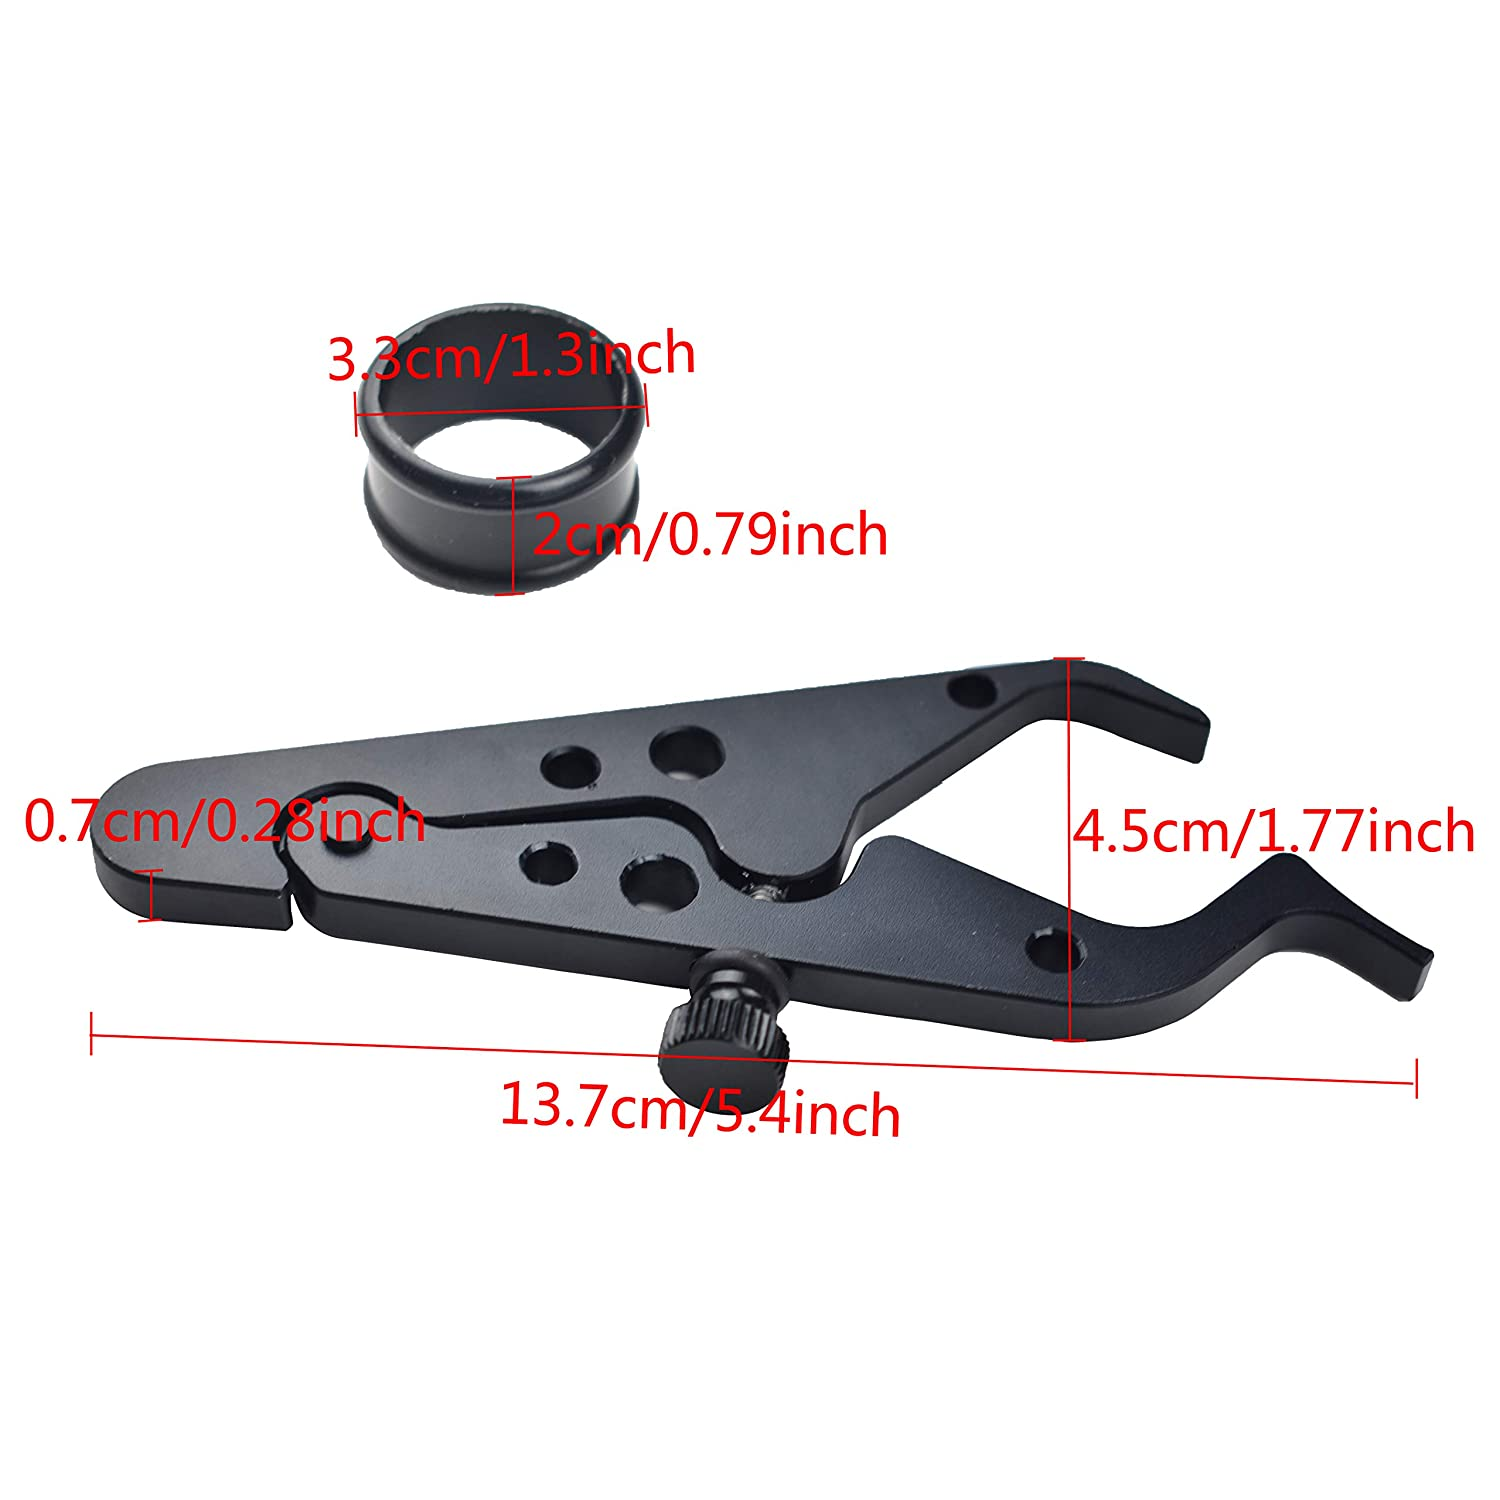 CHCYCLE Motorcycle Cruise Control Assist Throttle Mounted Handlebar Speed Cruise Control Black